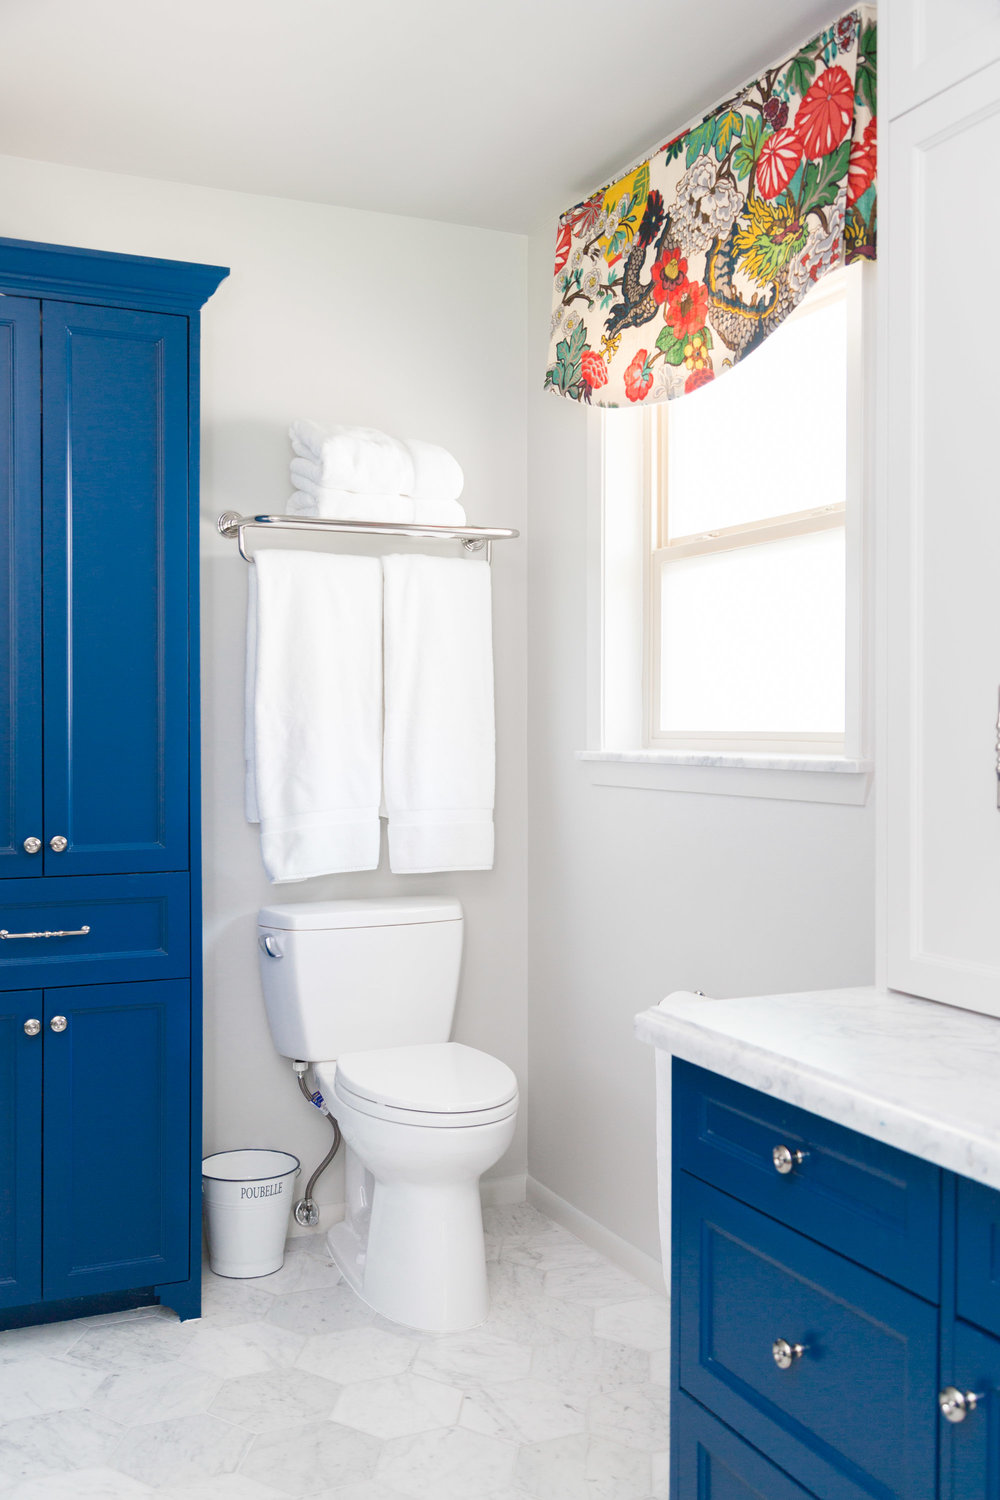 Navy blue cabinetry with Schumacher Chiang Mai Dragon fabric valance window treatment | Carla Aston, Designer | Tori Aston, Photographer  #bathroomremodel #marblebathroom #hextile #bluecabinets